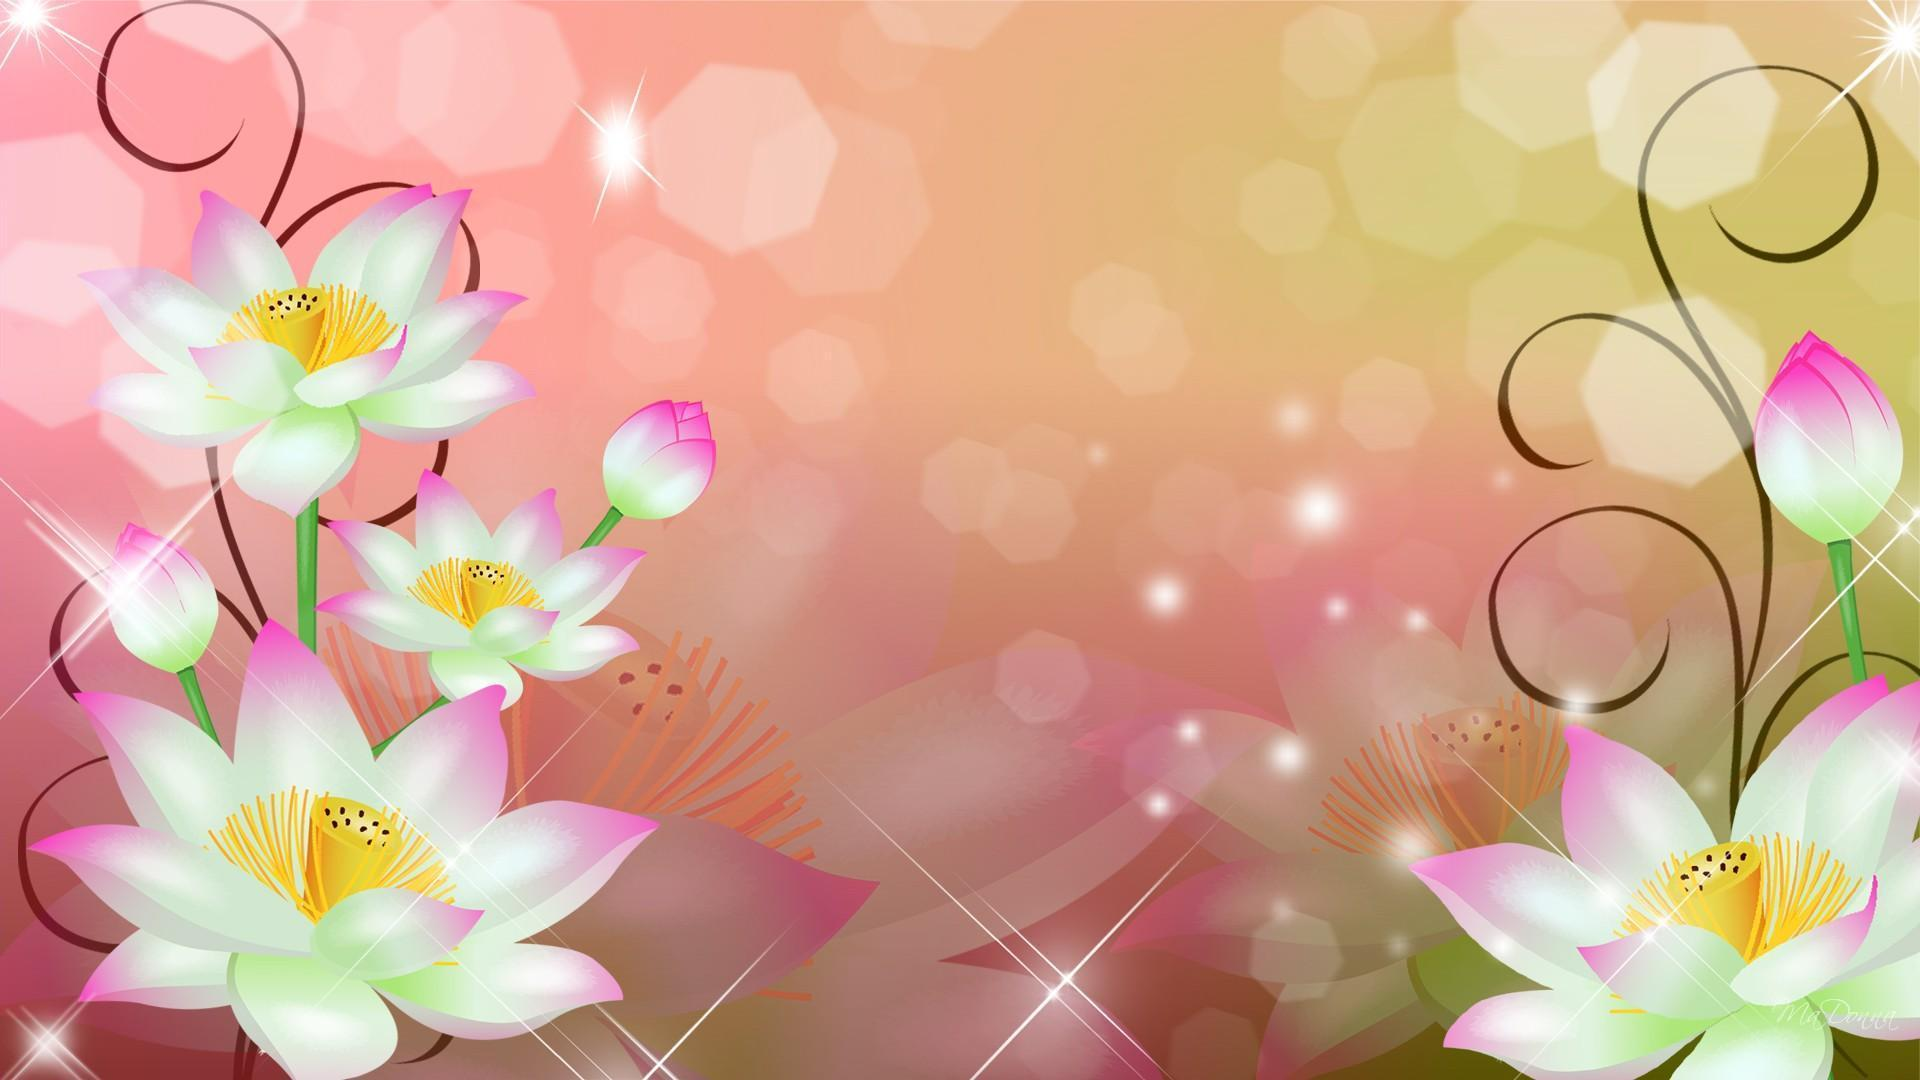 Wallpapers With Flowers 1920x1080